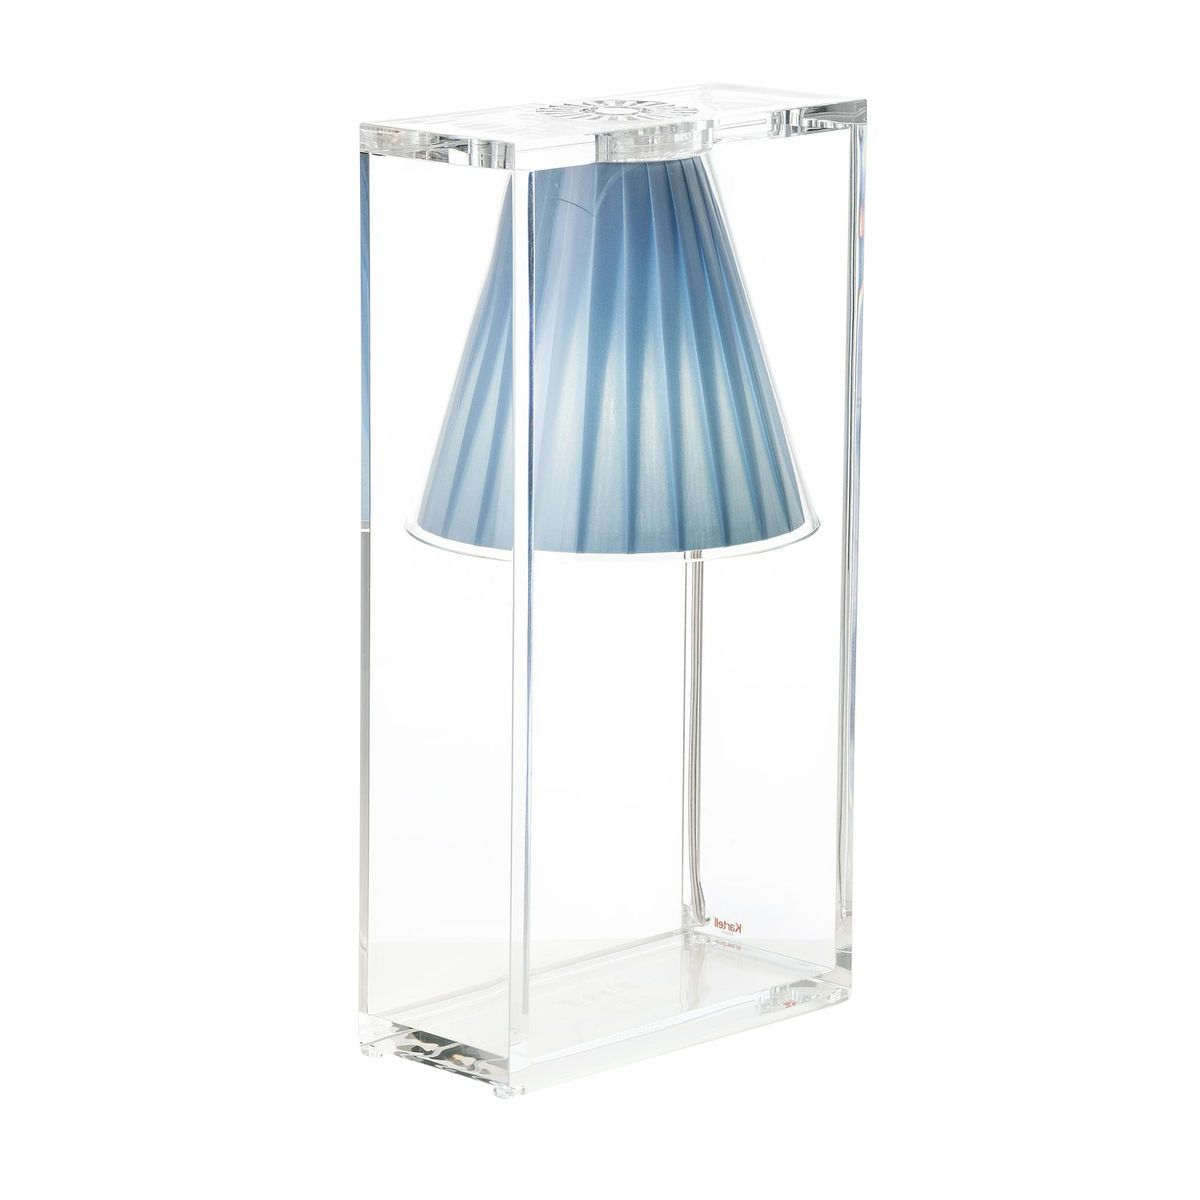 Light air table lamp with fabric kartell ambientedirect kartell light air table lamp with fabric bluefabric geotapseo Choice Image